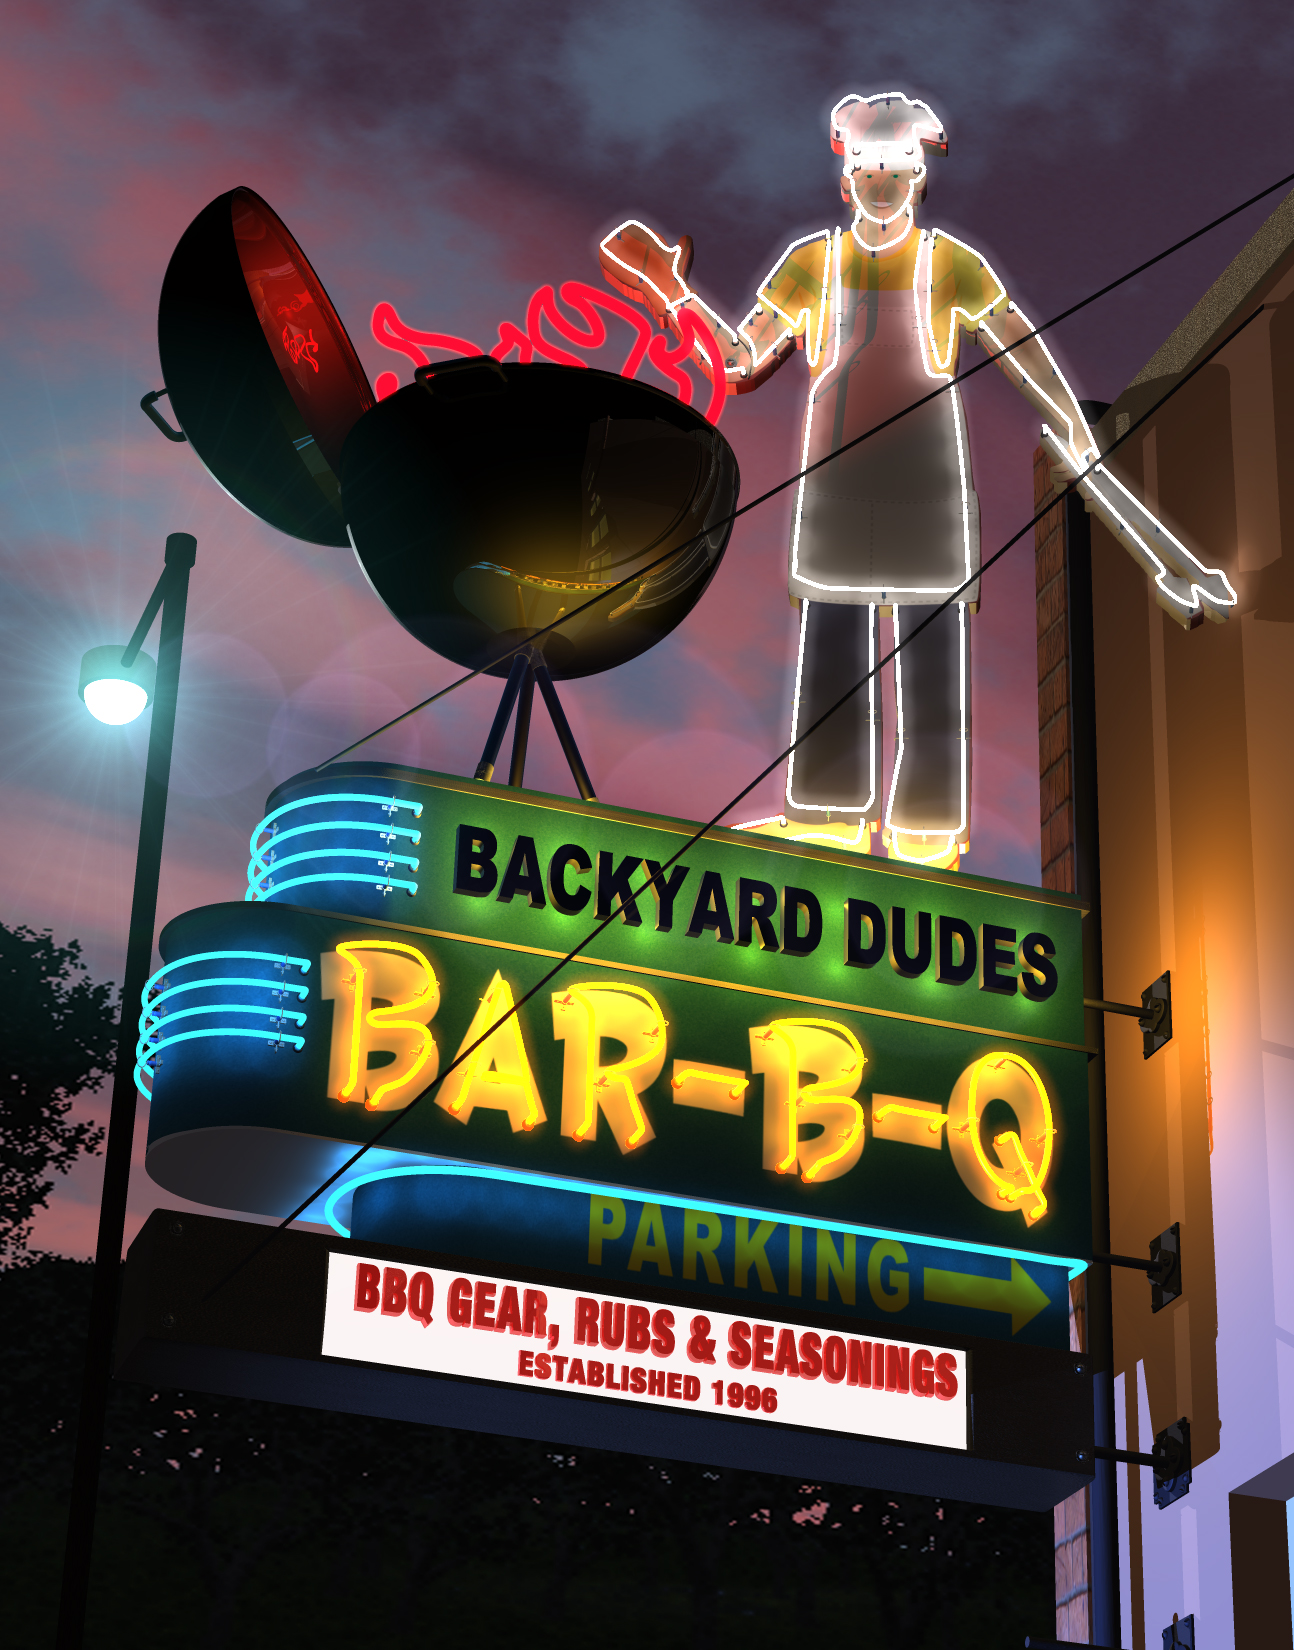 backyarddudes neon sign logo